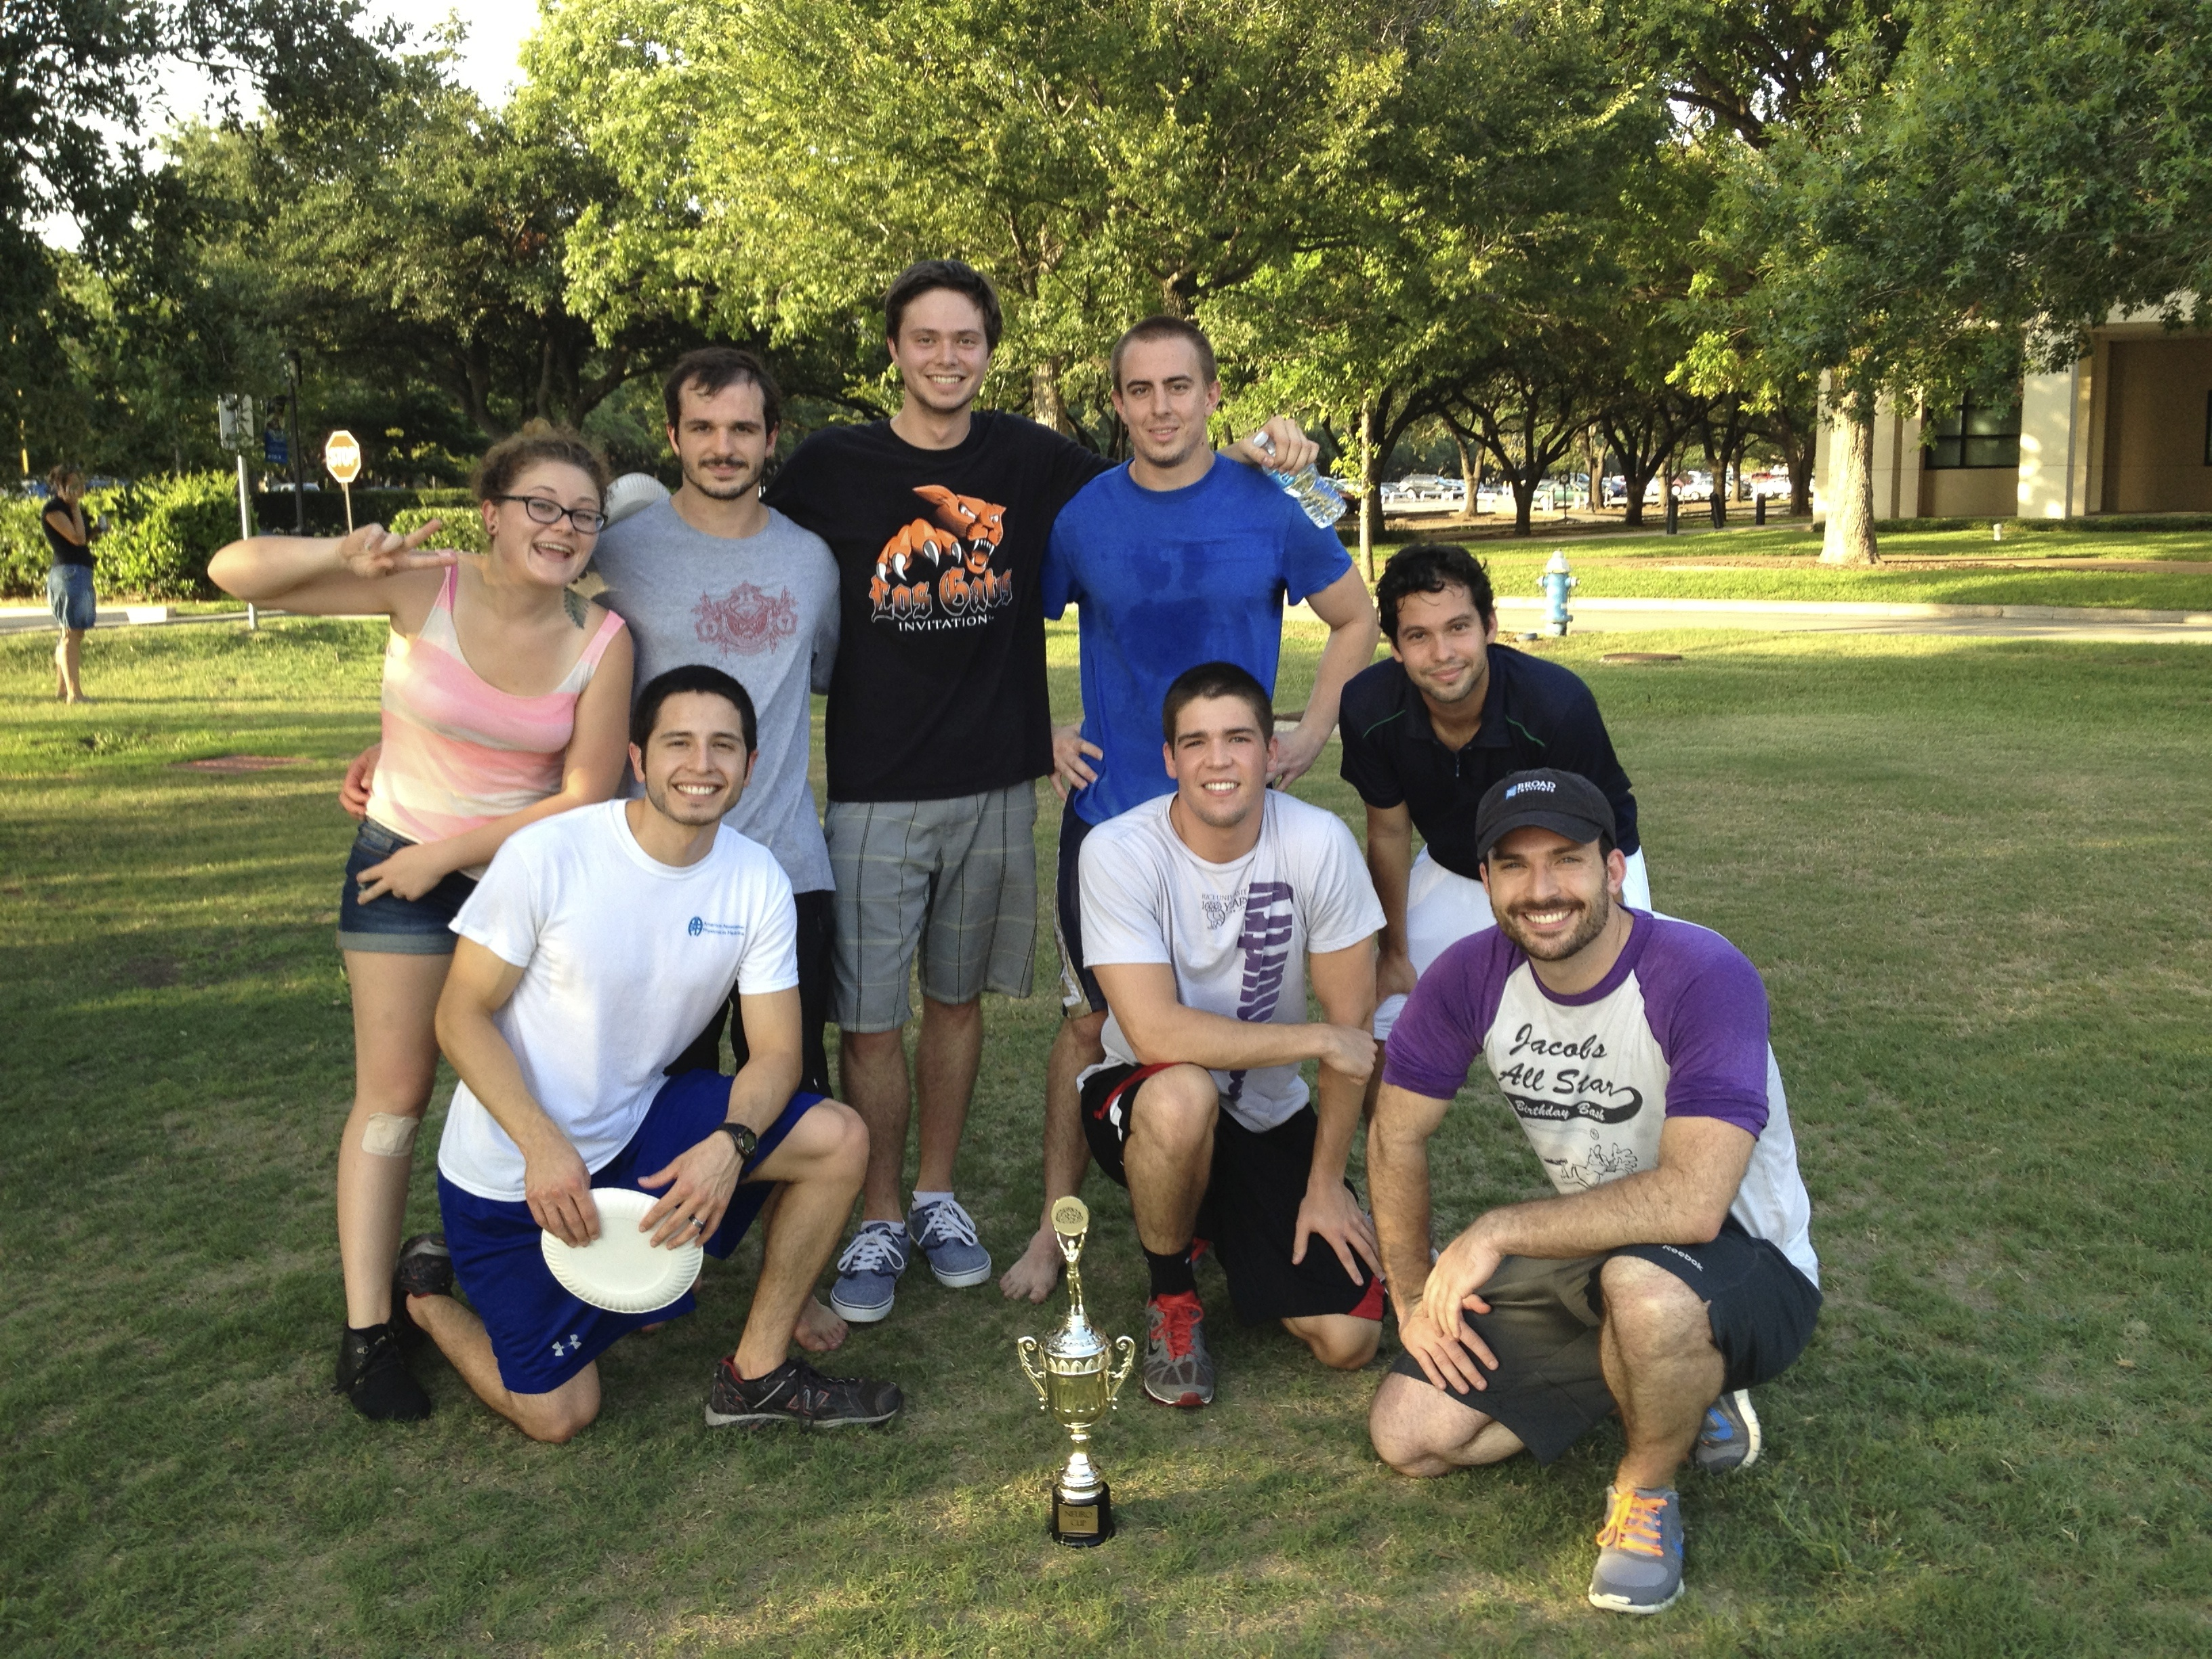 Neuro Cup 2013 Champs!